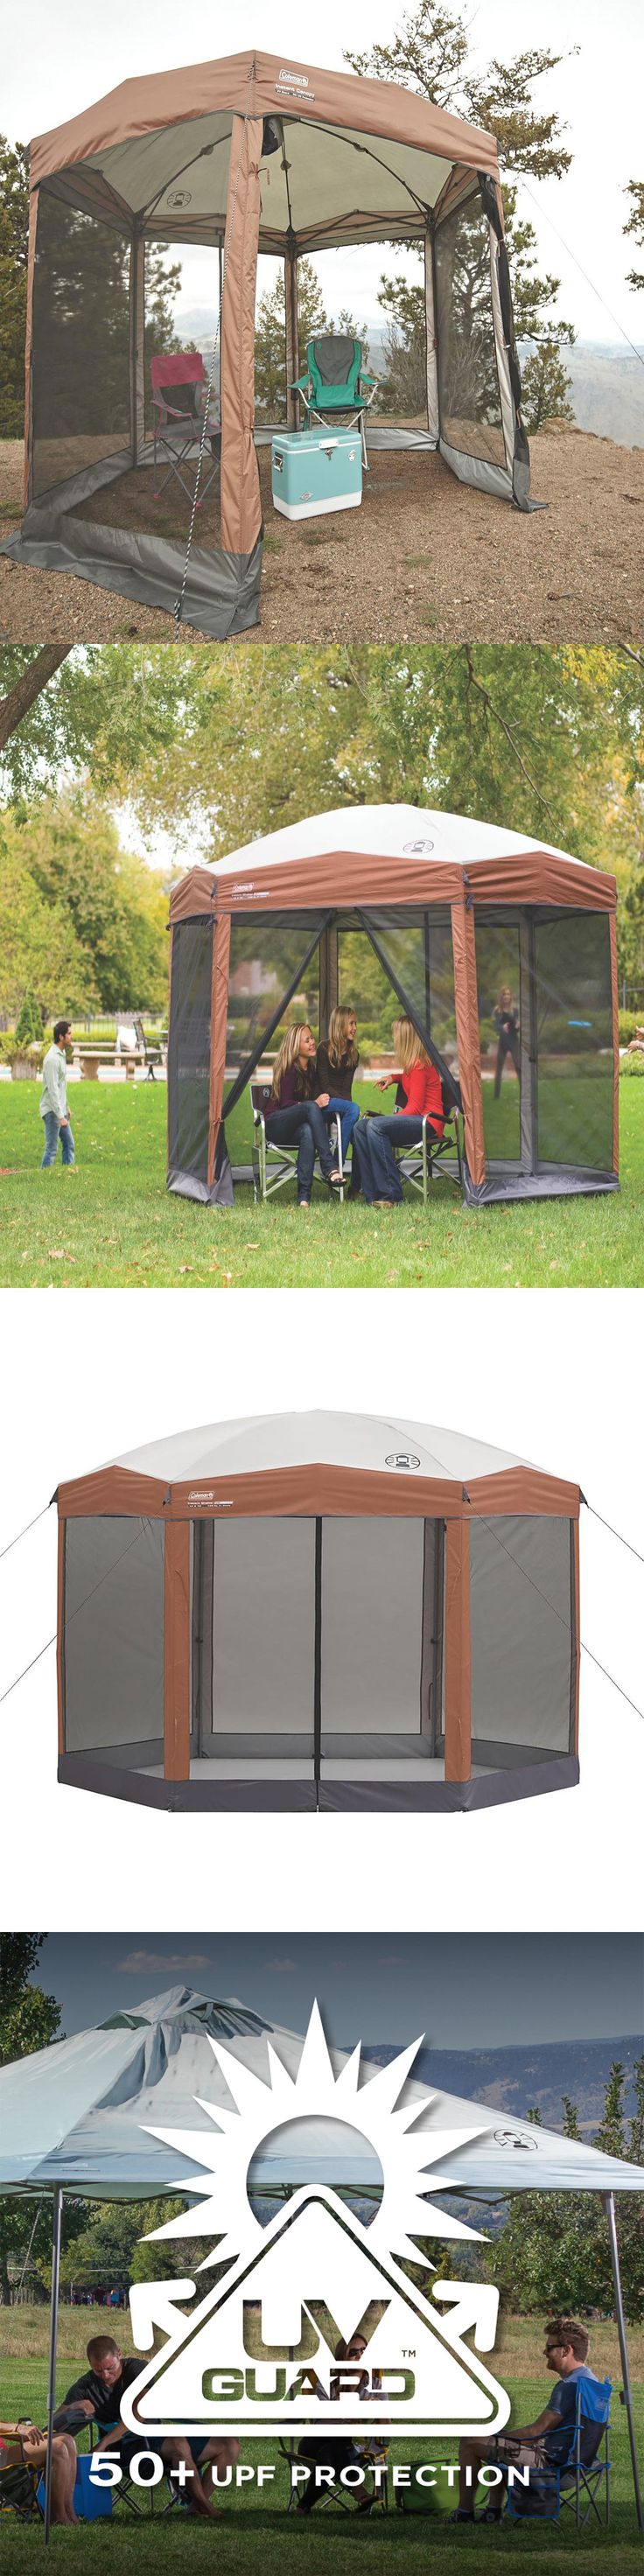 Canopies and Shelters 179011: Outdoor Screened Canopy Tent 12 X10 Instant Shelter Patio Camping House Gazebo -> BUY IT NOW ONLY: $169.5 on eBay!